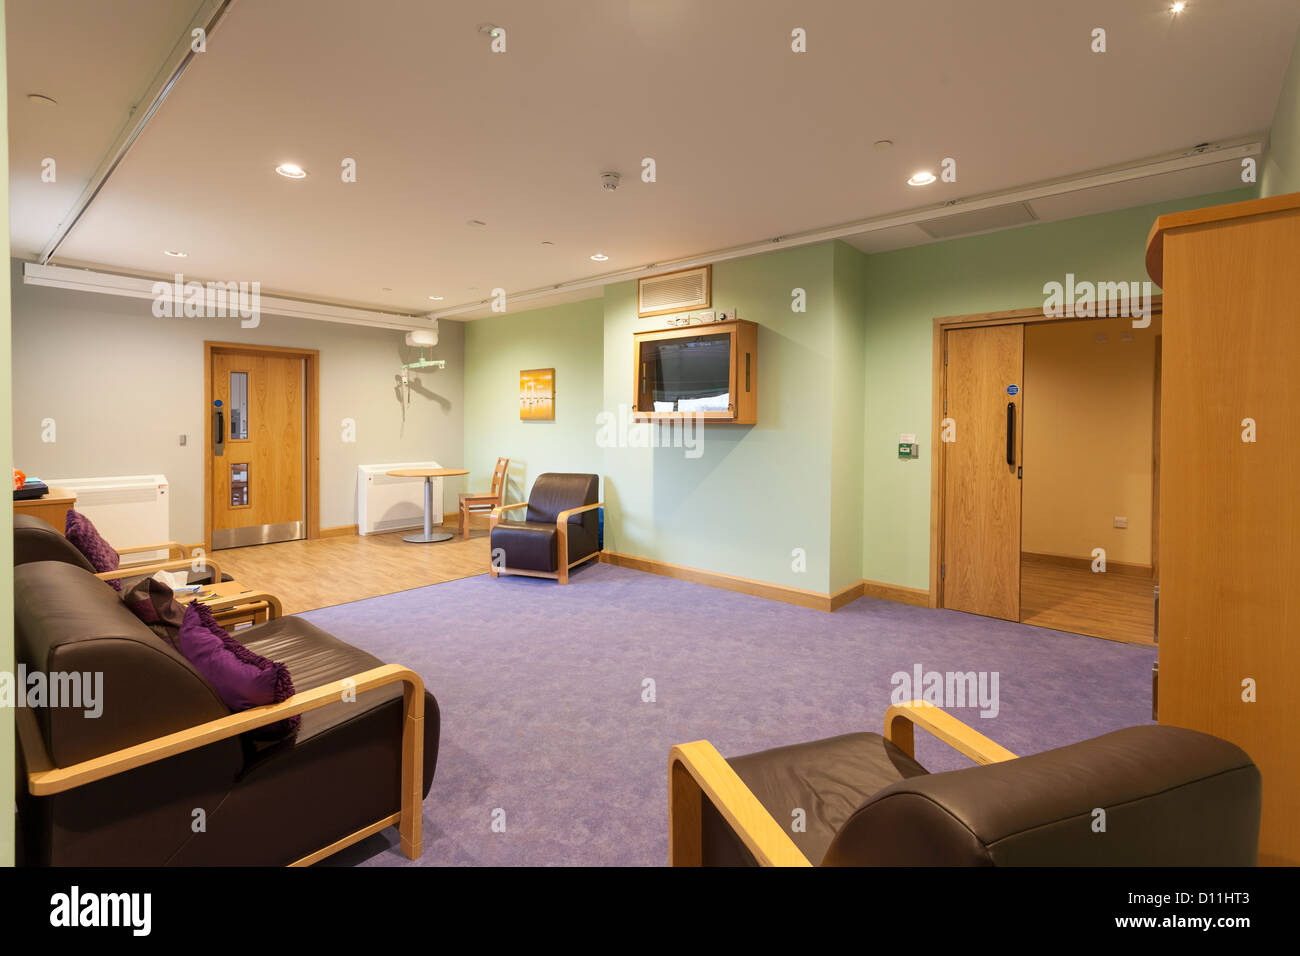 care home, challenging behaviour residents lounge with ceiling track hoist lifting and polycarbonate screen protected - Stock Image